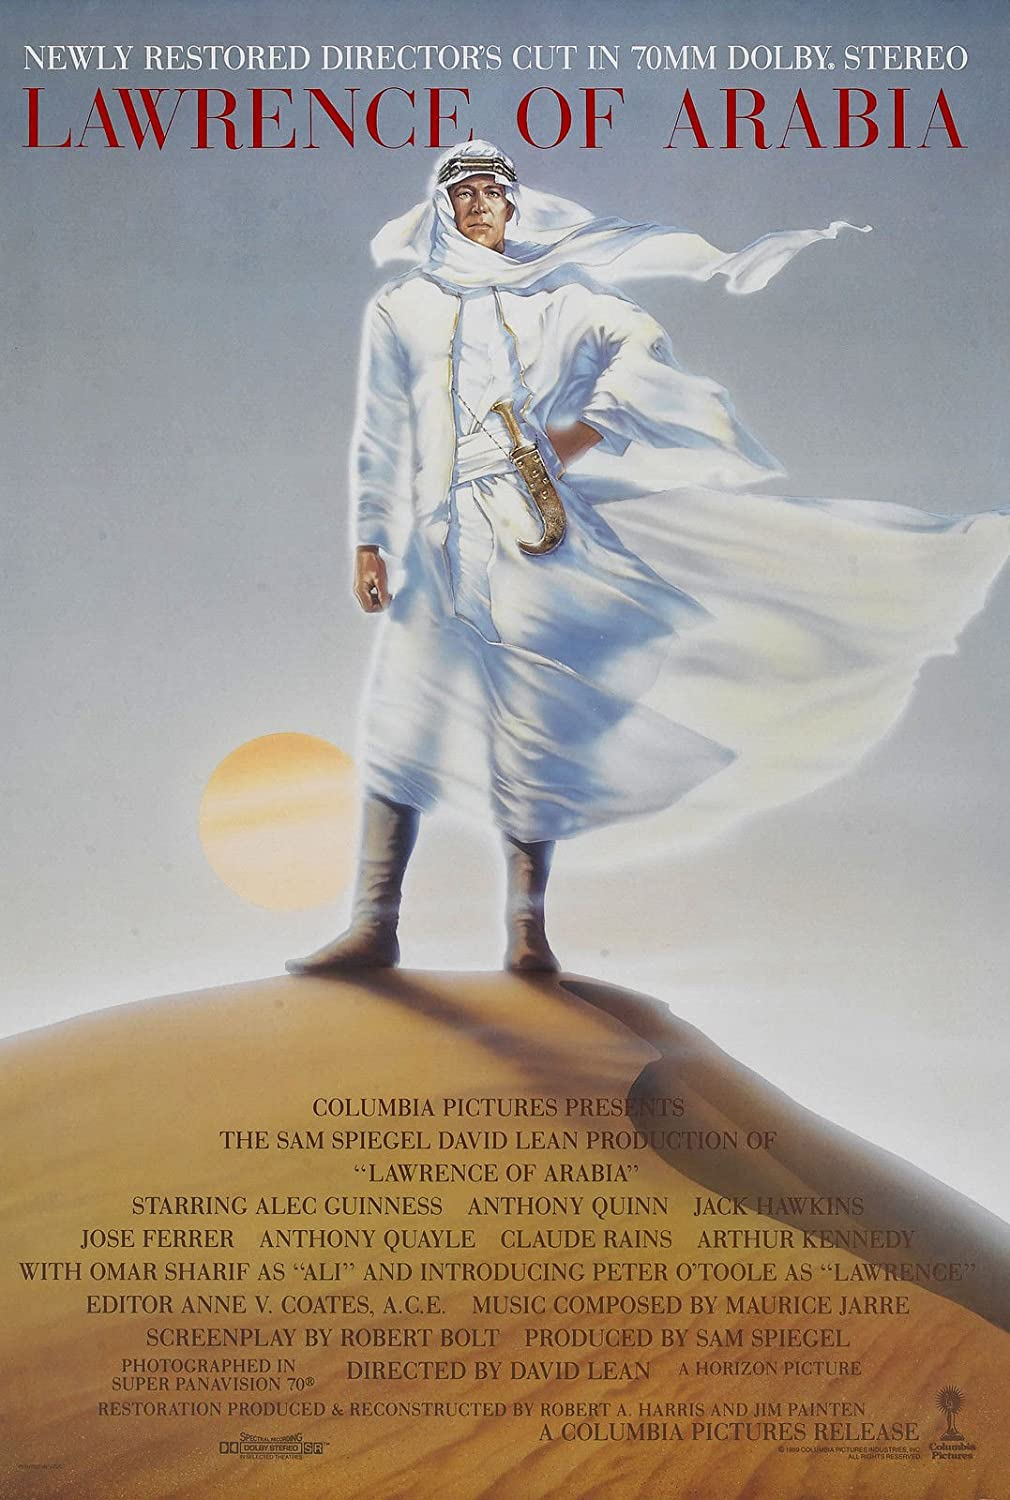 LAWRENCE OF ARABIA Movie Poster 1962 Hollywood Classic 24x36inch